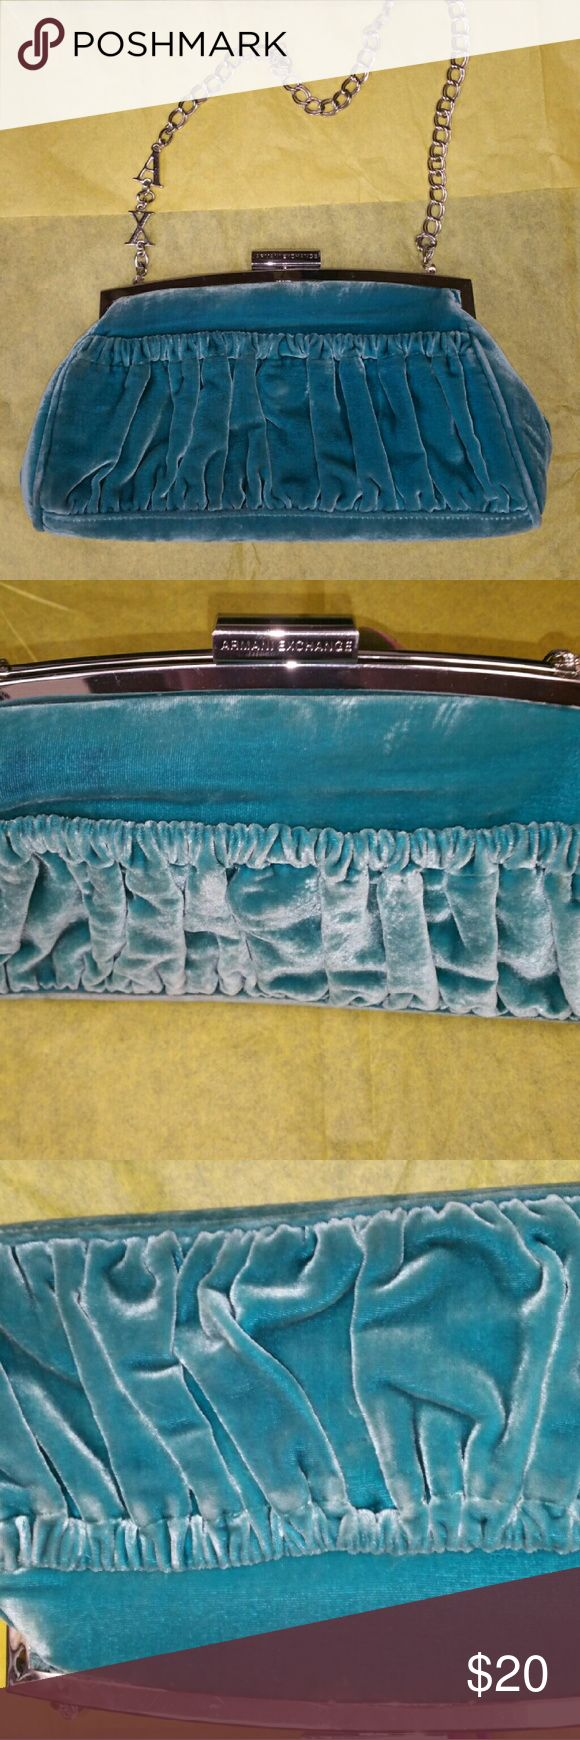 Armani Exchange purse Adorable velvet teal color mini purse good condition other then small imperfection see  4th pic. Not very noticable Armani Exchange Accessories